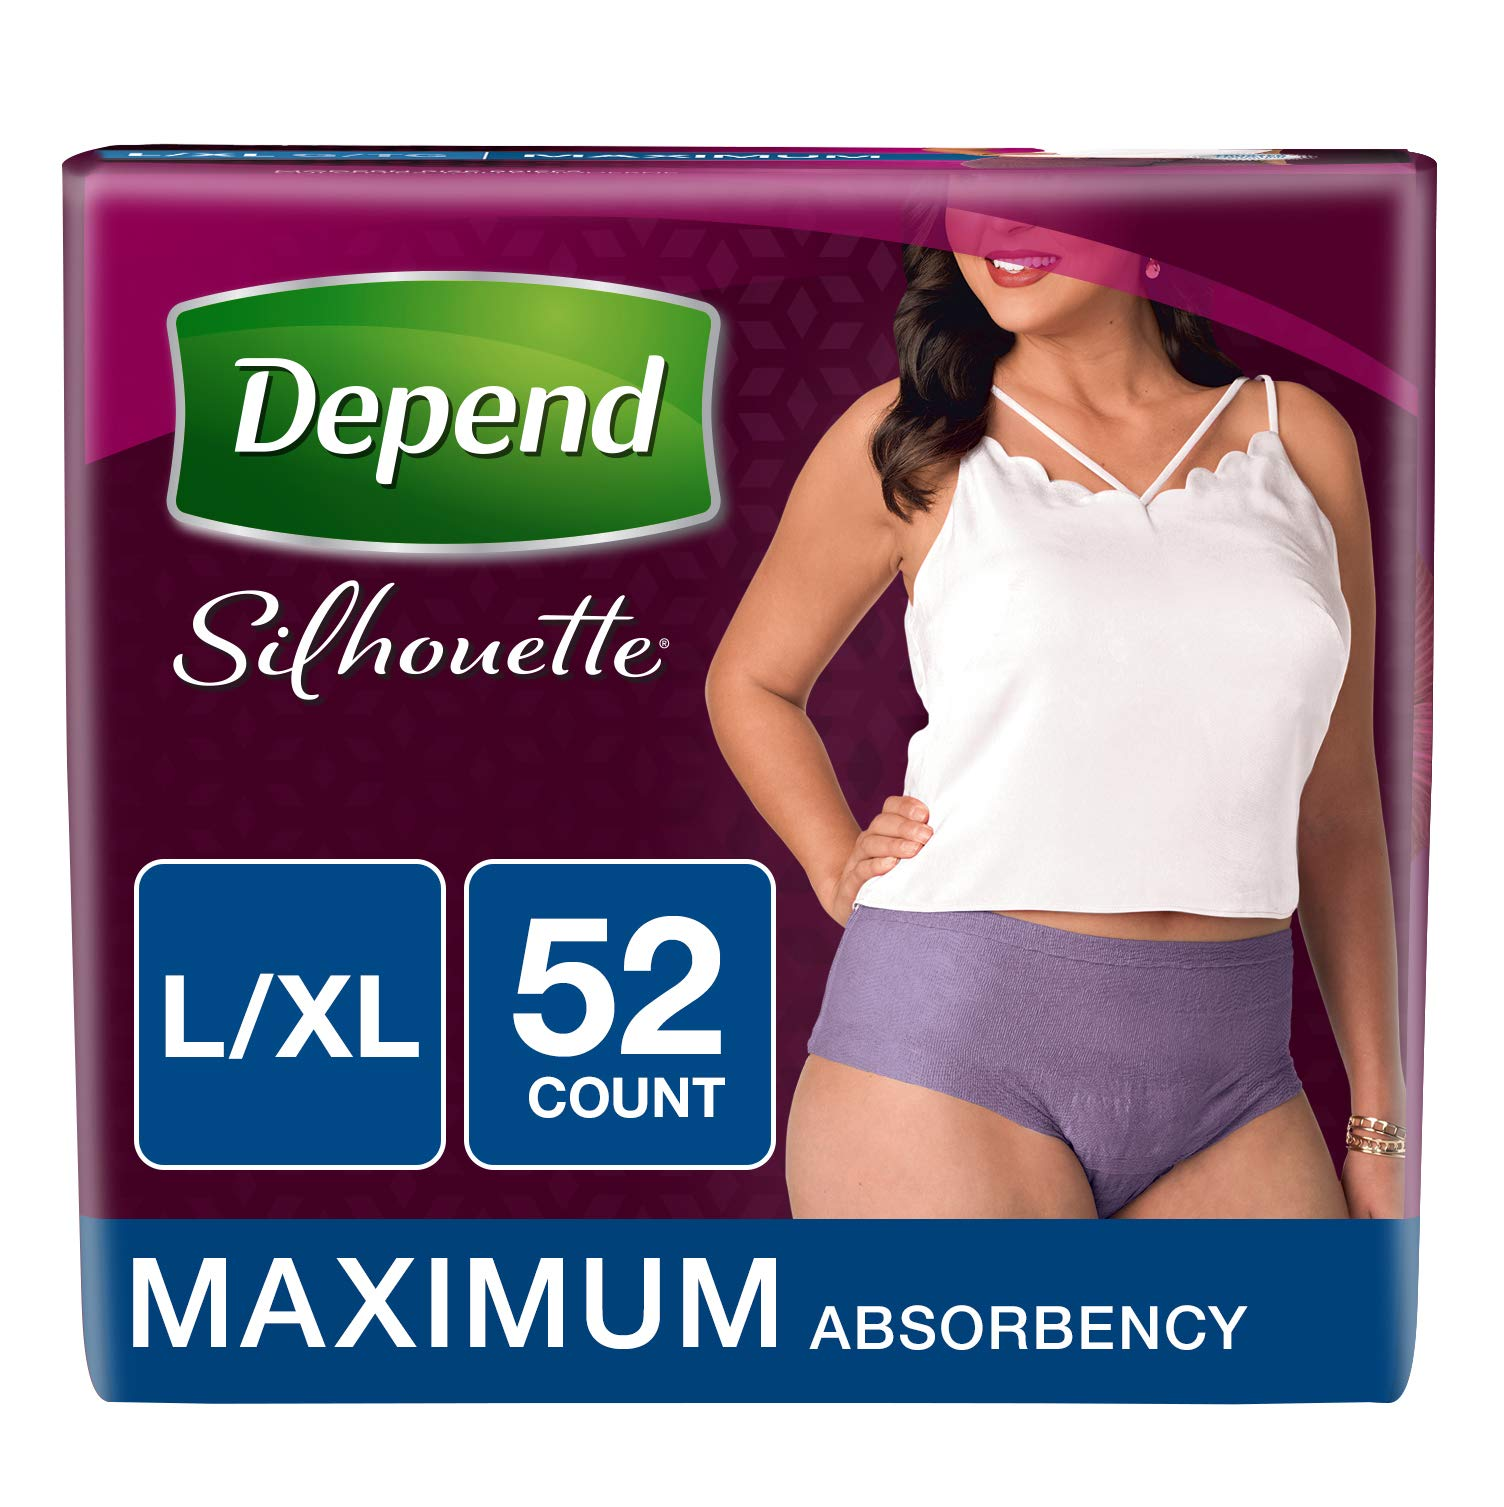 Depend Silhouette Incontinence Underwear for Women, Maximum Absorbency, L/XL, Purple, 52 Count by Depend